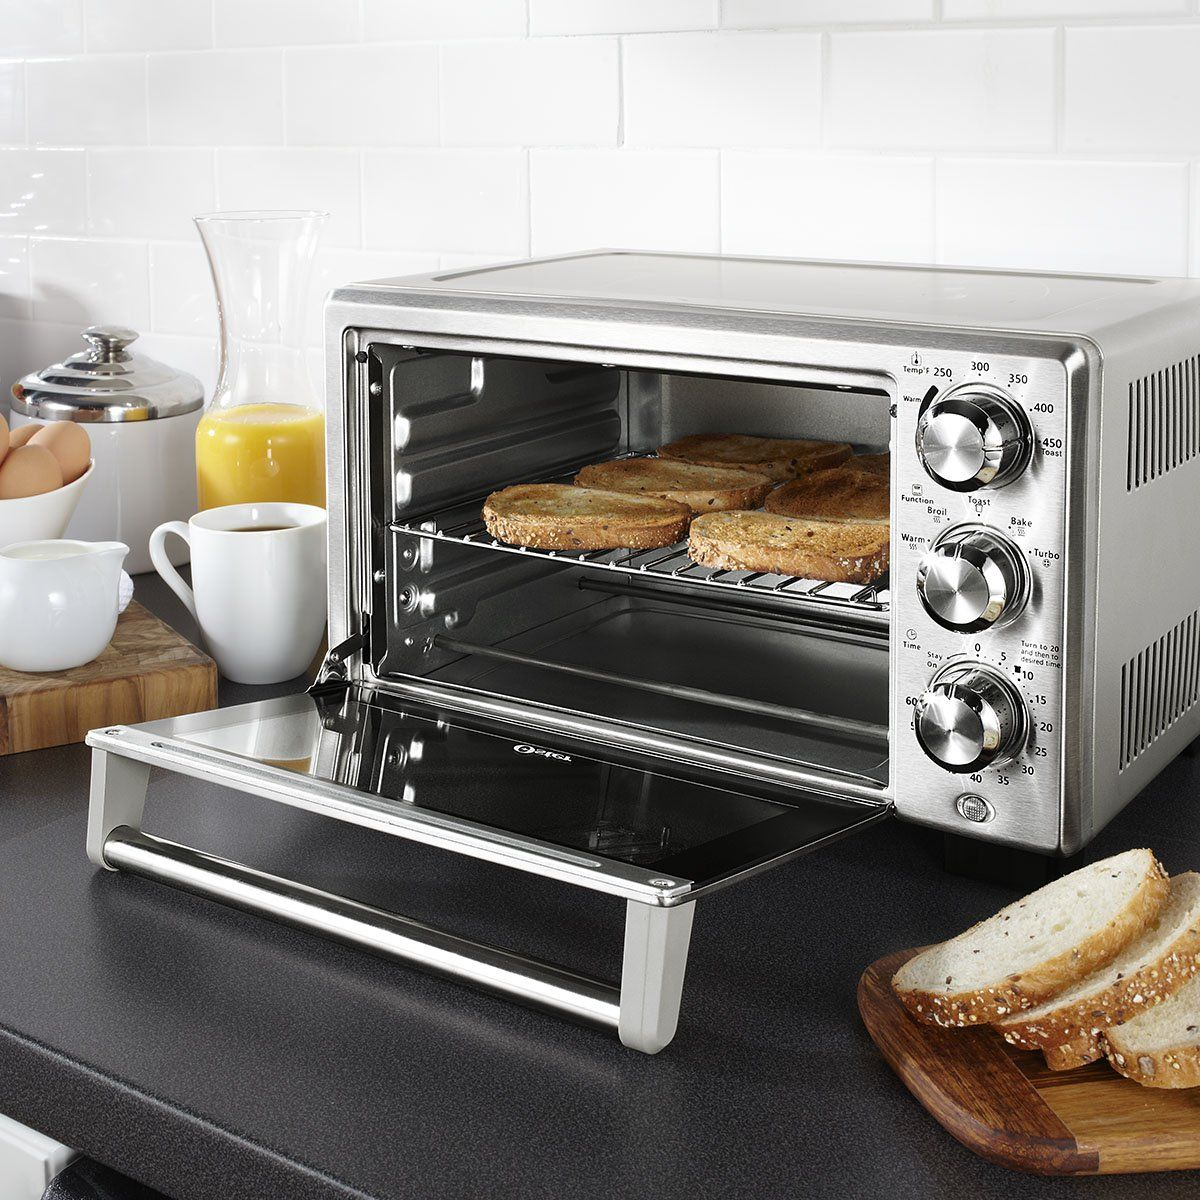 5 Best Toaster Ovens In 2020 Top Rated Baking And Cooking Toasters Fully Reviewed In 2020 Toaster Oven Toaster Oven